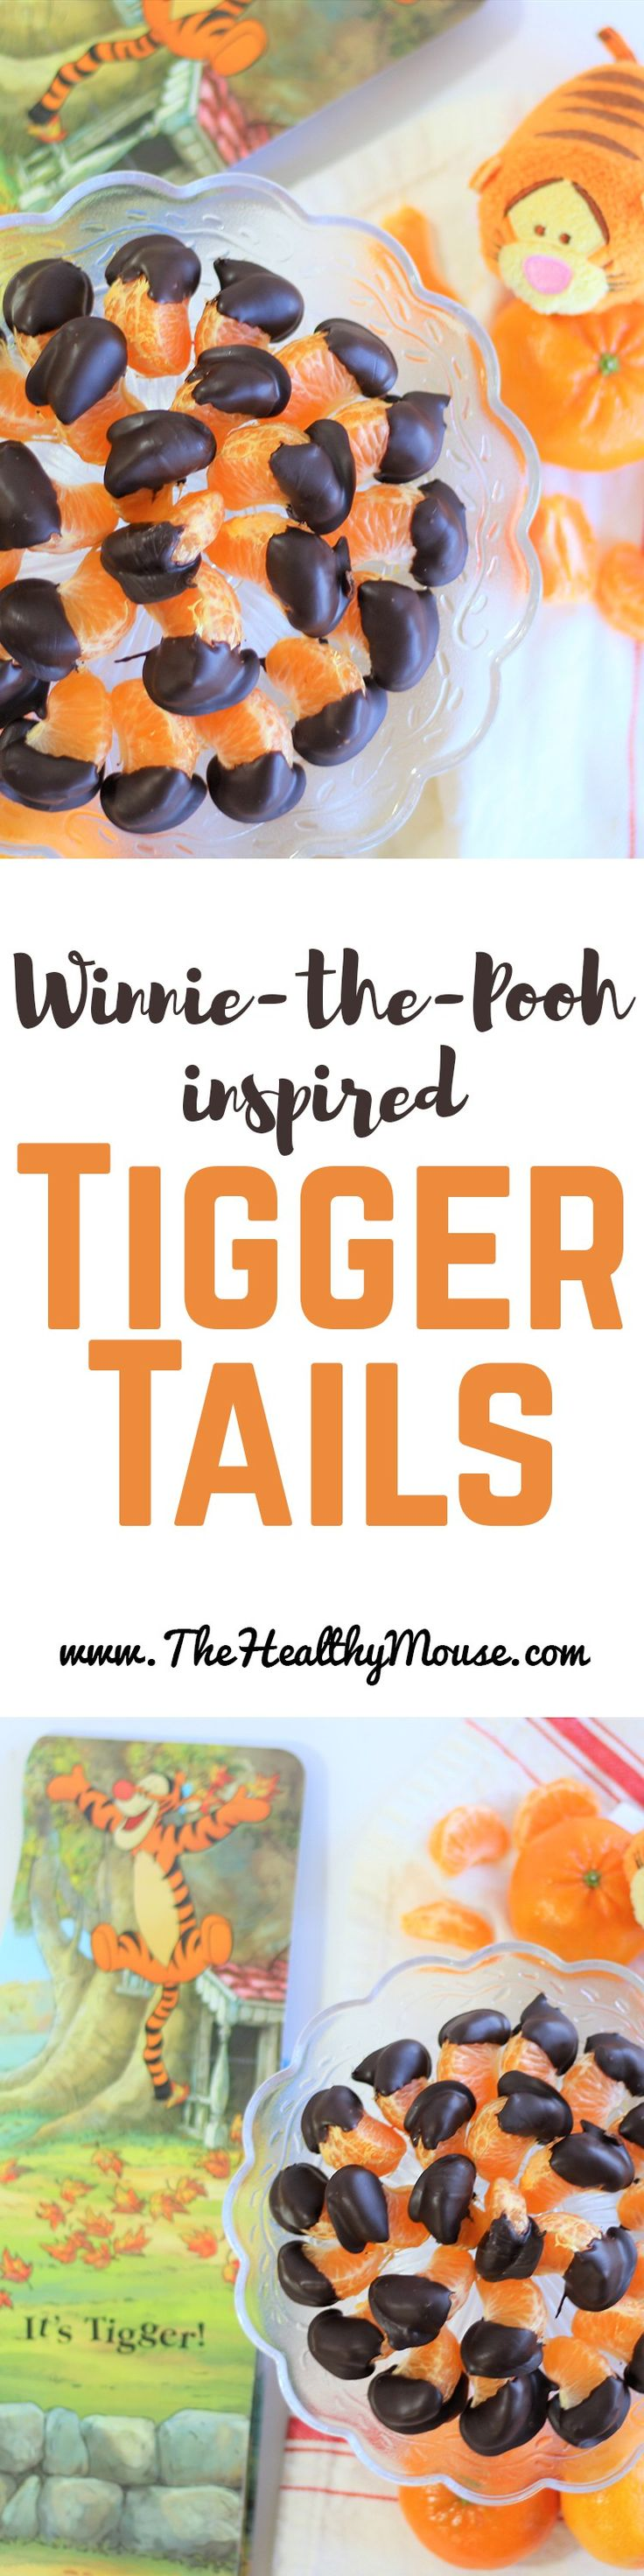 Tigger Tails - Healthy Winnie the Pooh Inspired Recipe - Disney Recipe -Disney Dessert - Winnie the Pooh Party - Tigger Recipe -Disney Family - #DisneyWeekend